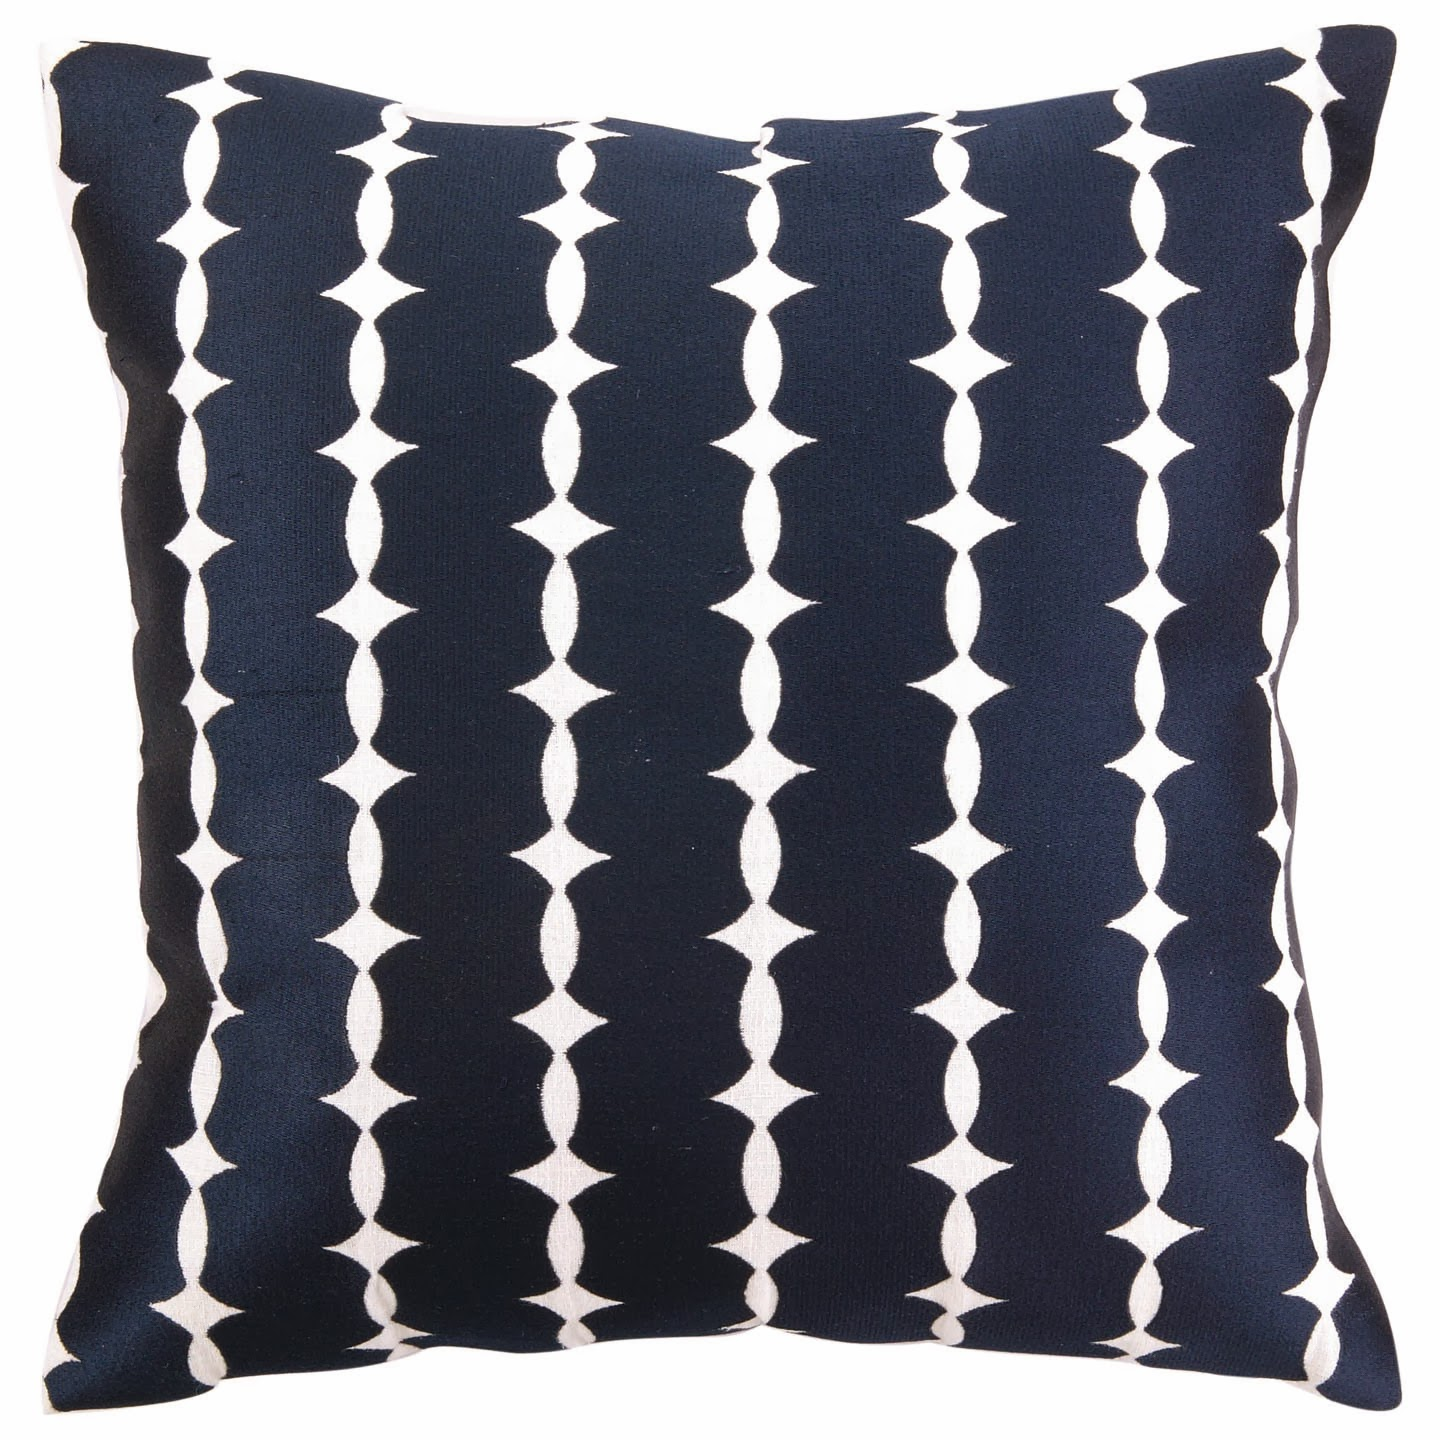 COCOCOZY Wellesley Embroidered Pillow in blue on white